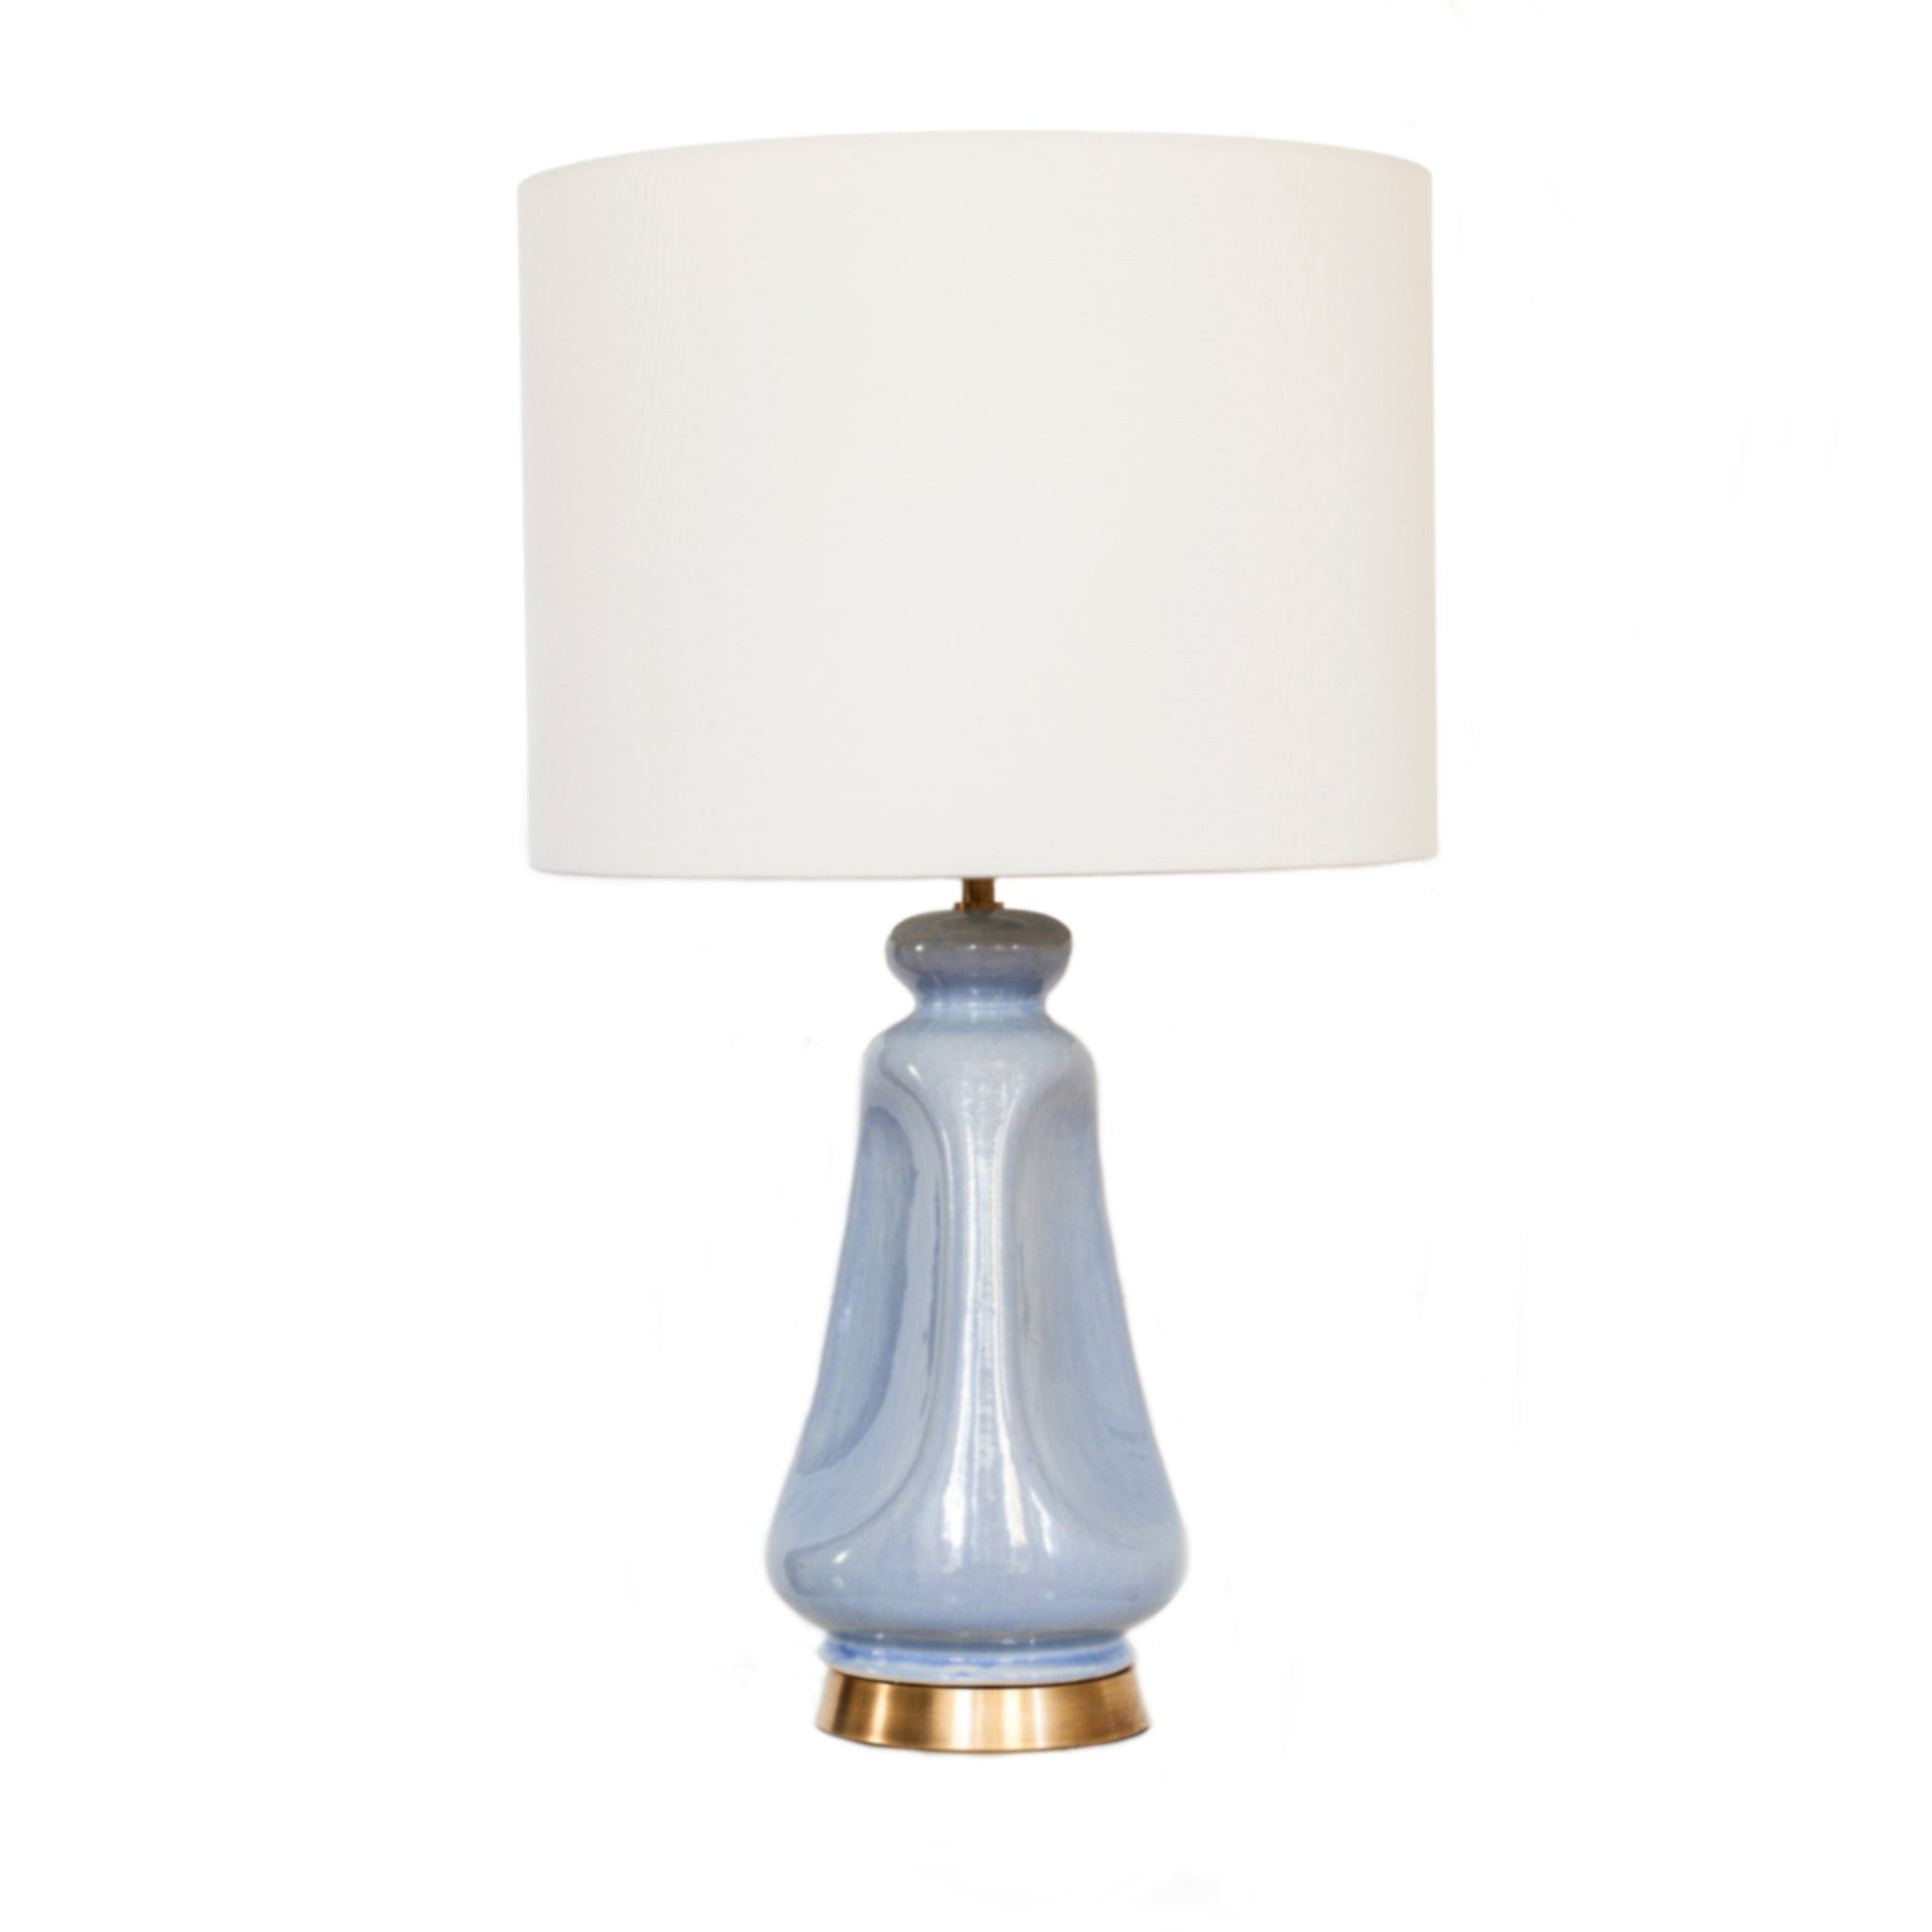 Kapila Table Lamp in Polar Blue Crackle